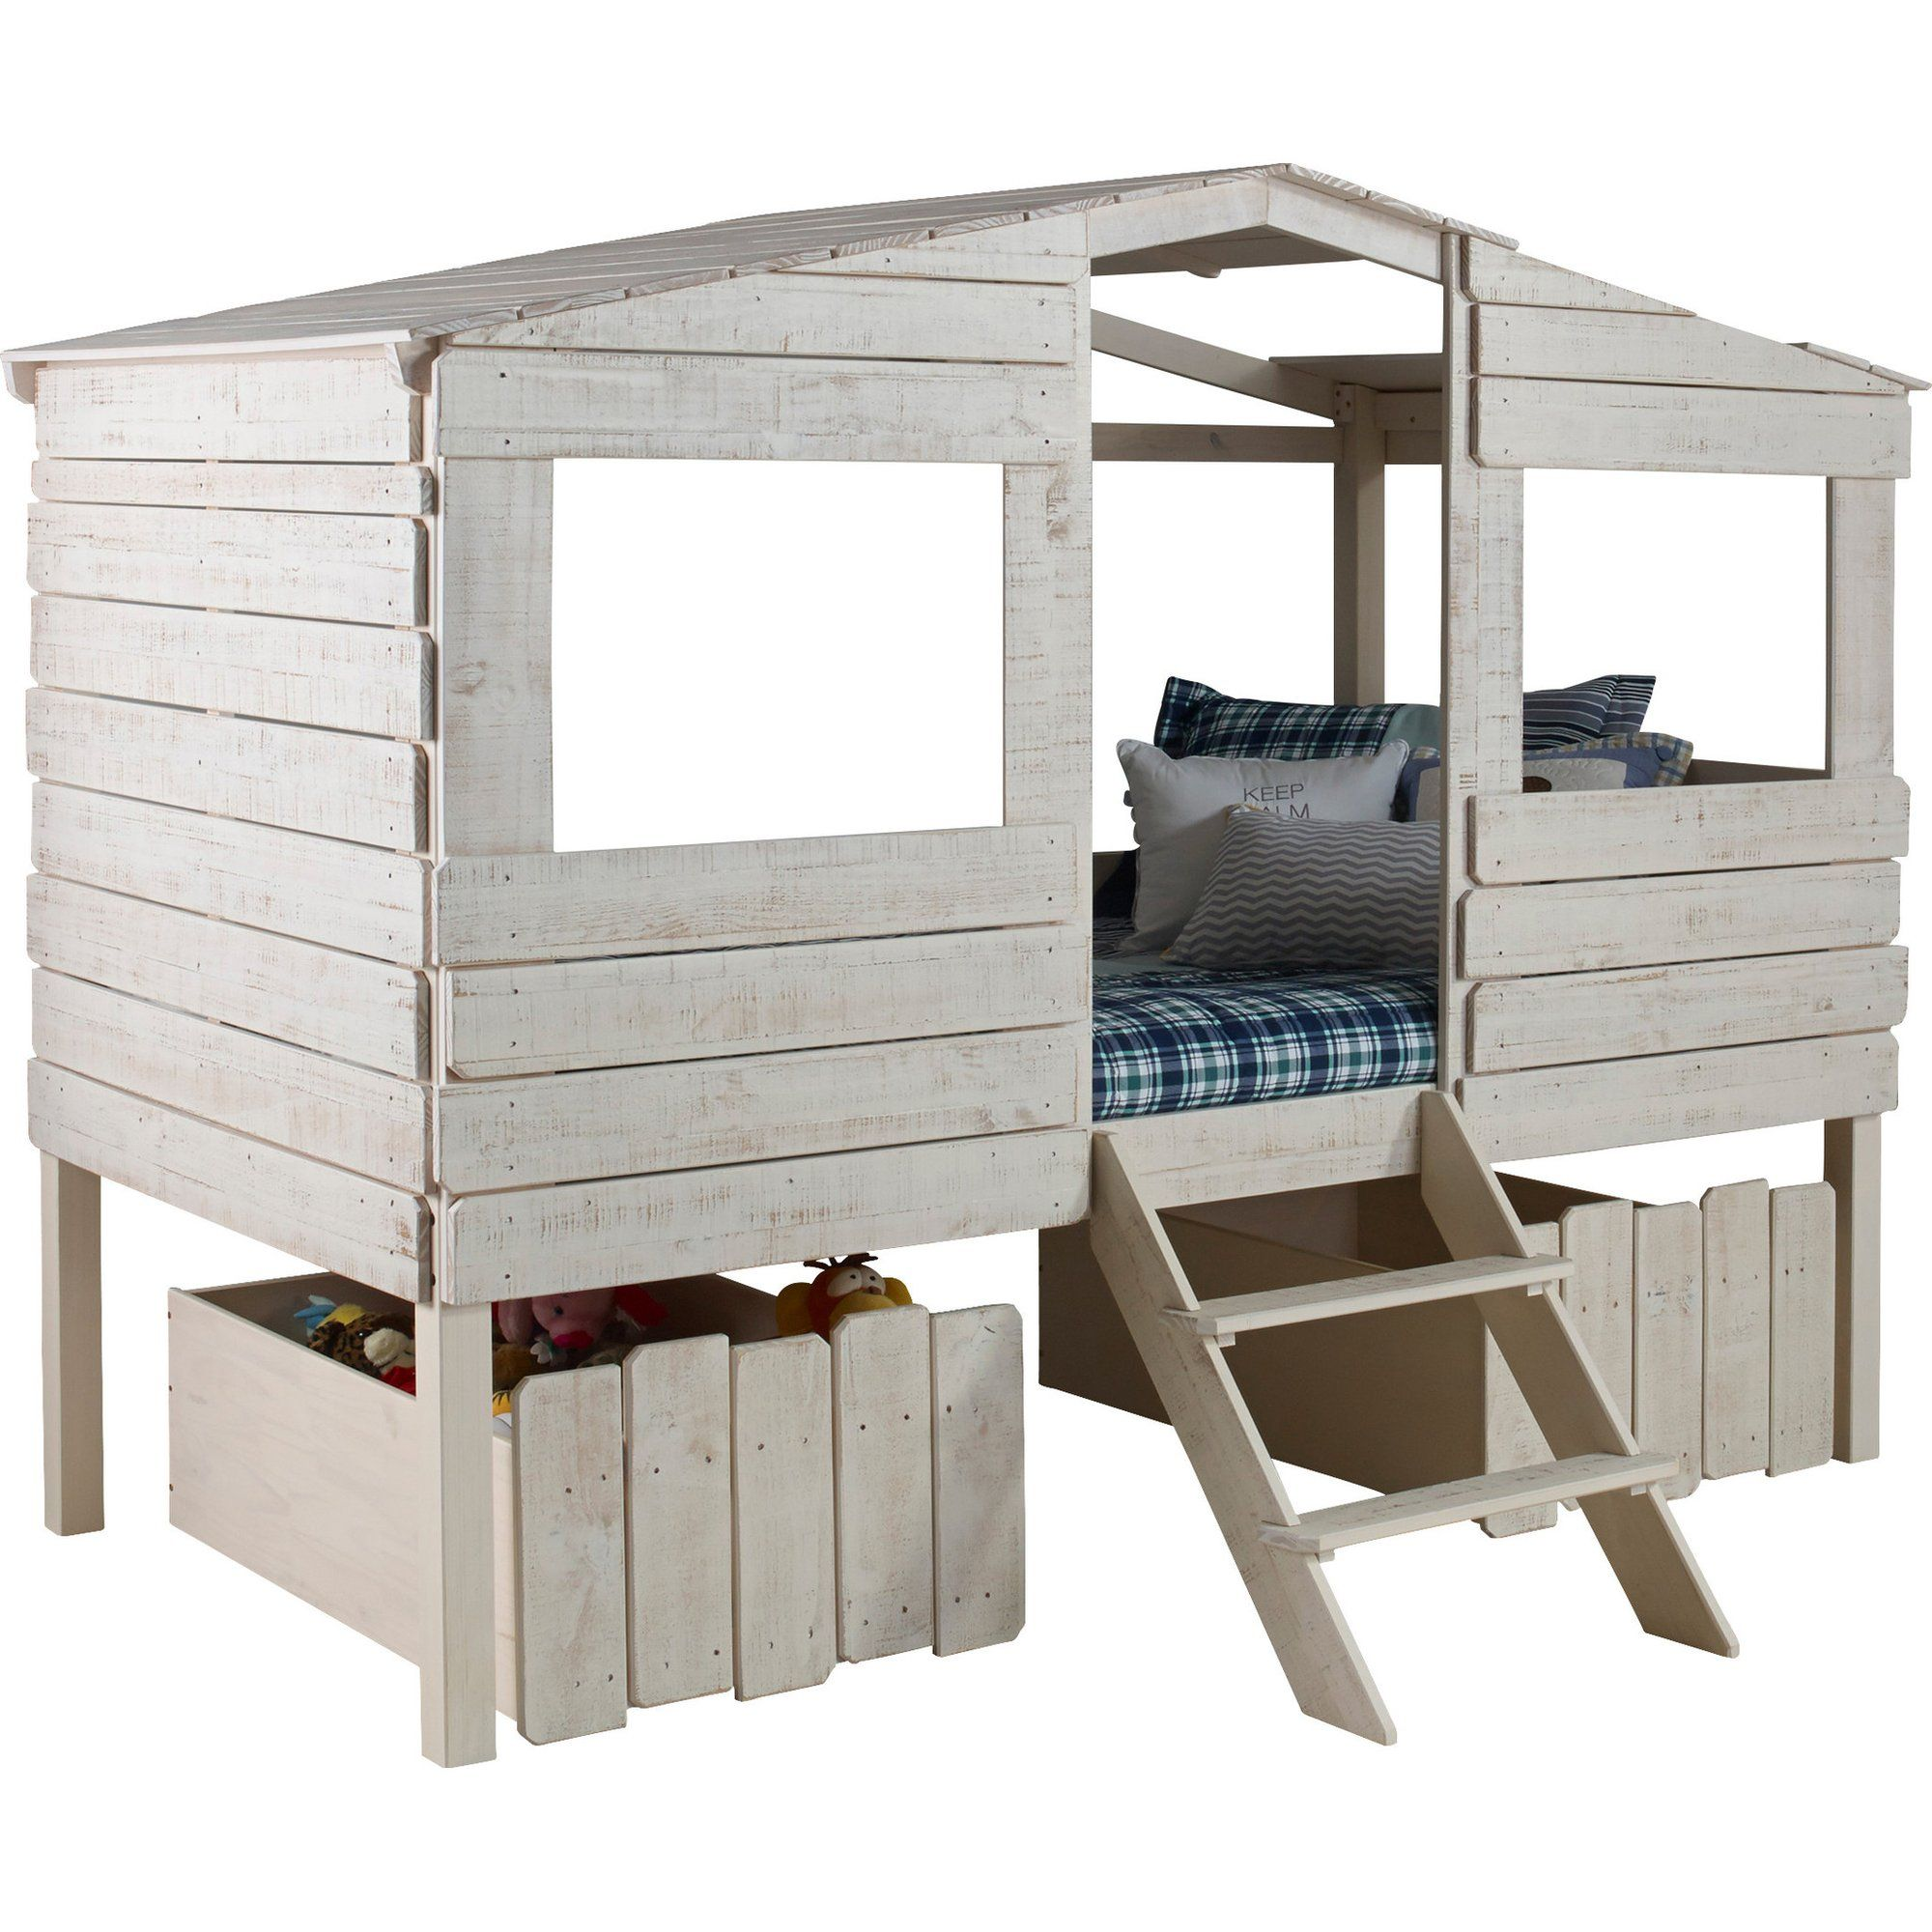 Loft bed boy room ideas  Safari Tree House Loft Bed  For Bill To Do  Pinterest  Driftwood